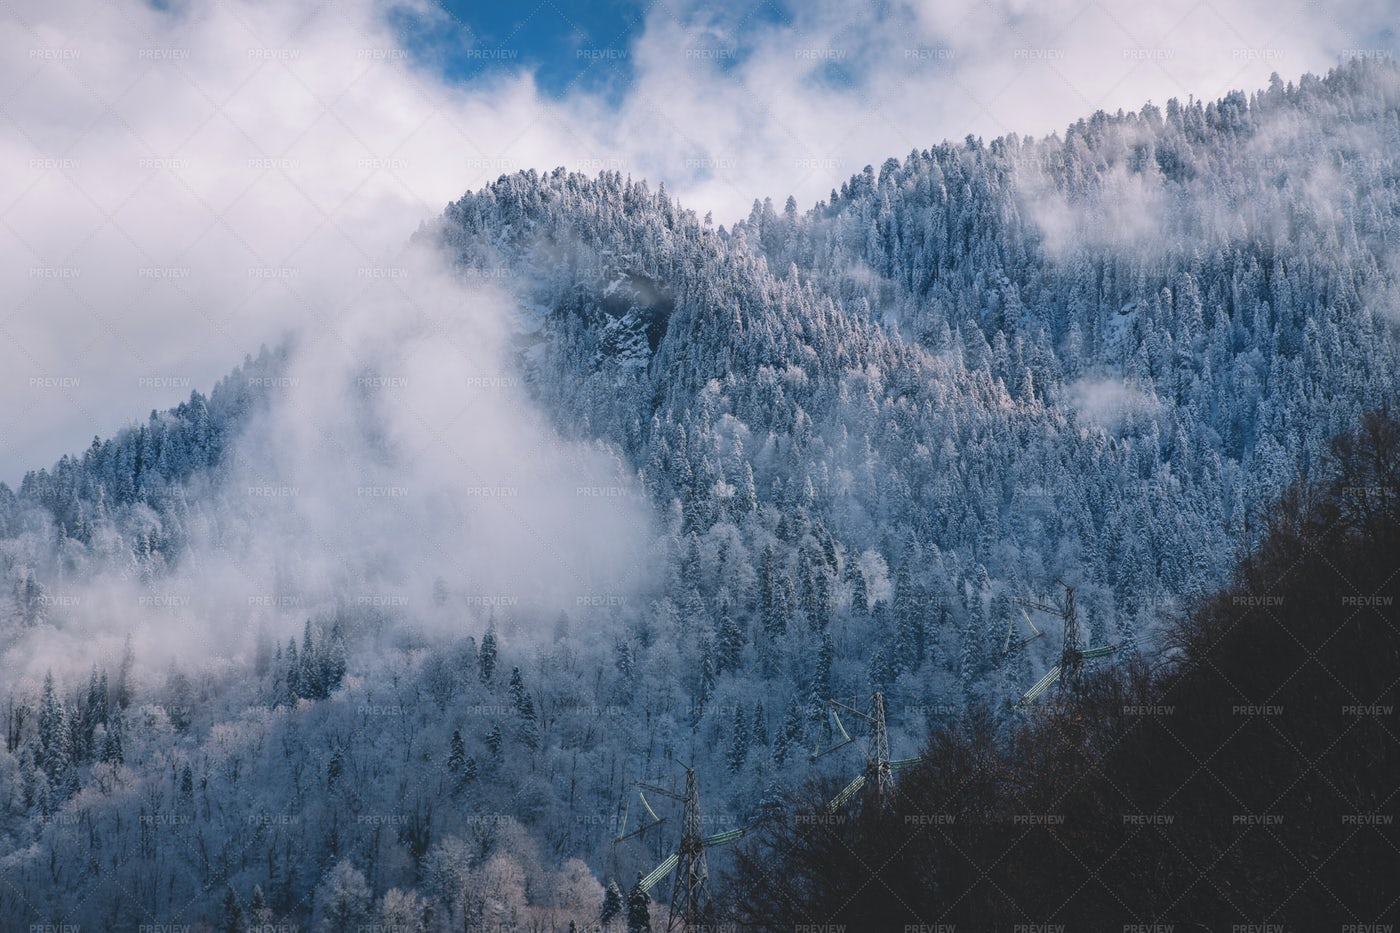 Snowy Mountain Forest And Clouds: Stock Photos